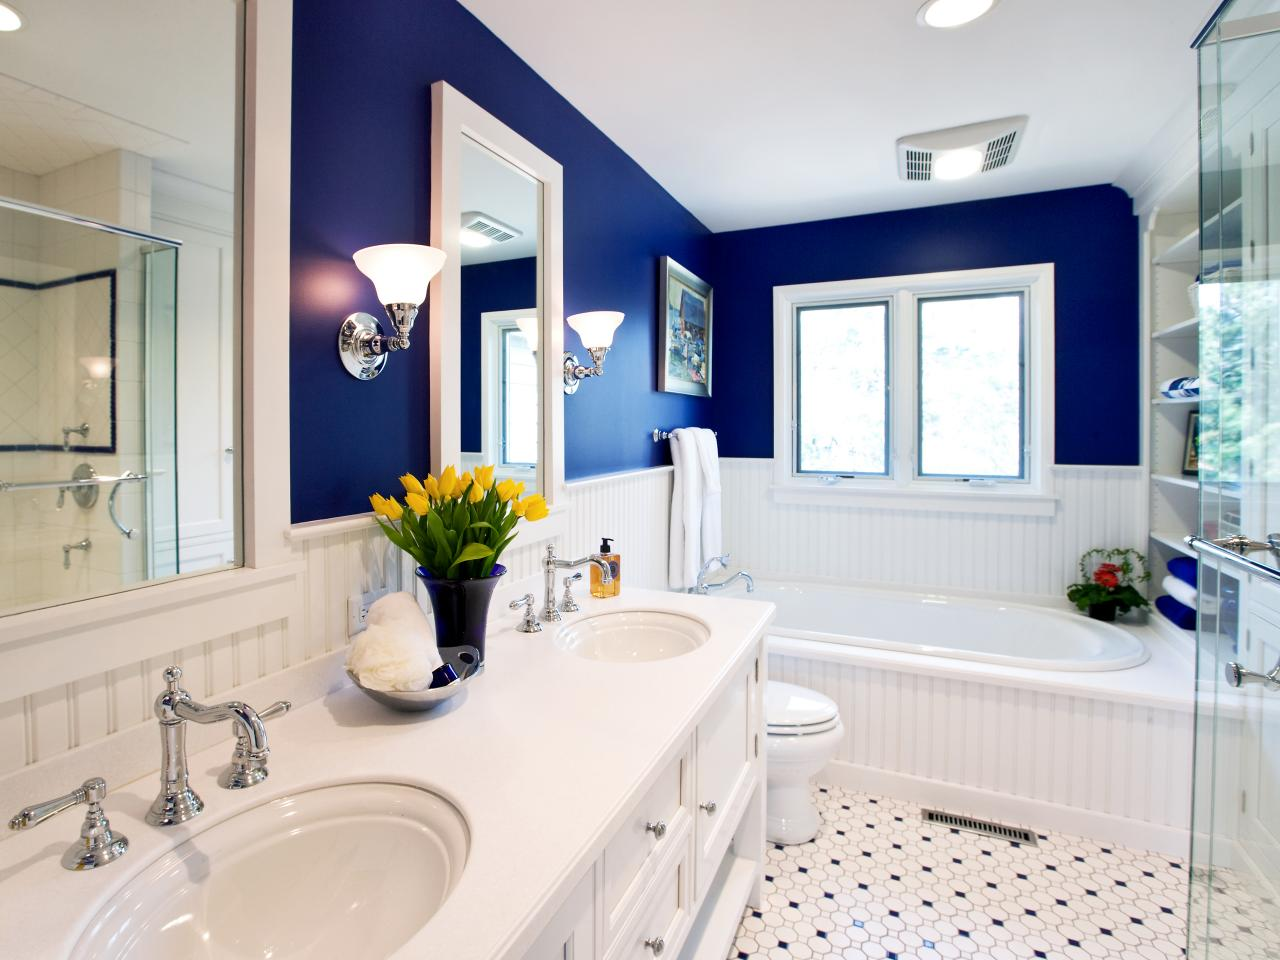 Traditional Bathroom Designs Pictures Ideas From HGTV HGTV - Classic bathroom renovations